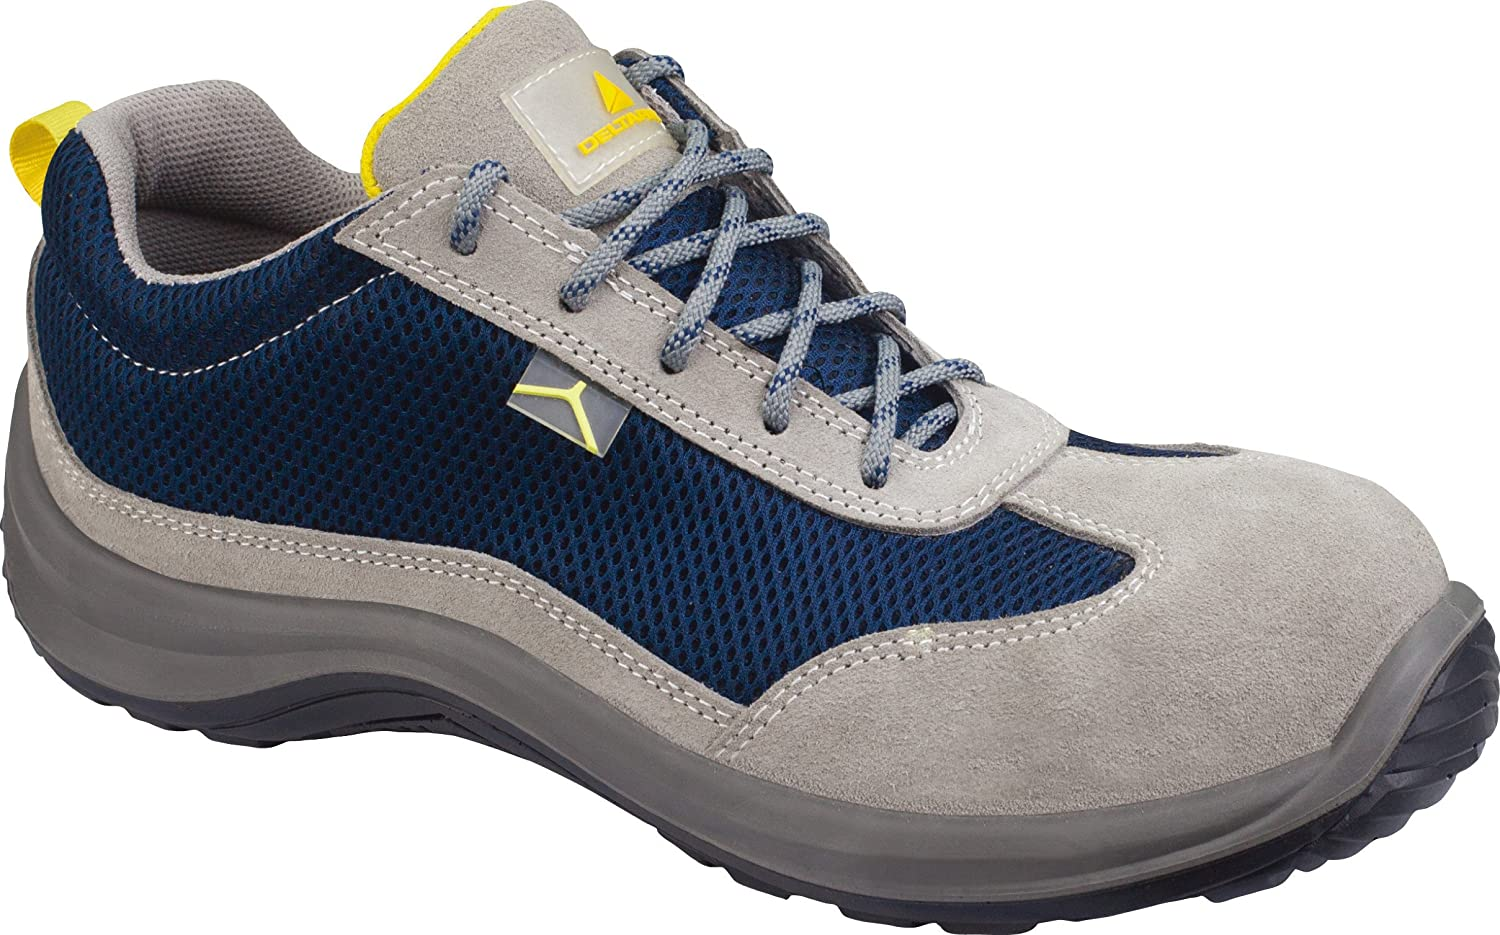 Delta Plus Fennec III S1P Grey Suede Leather Steel Toe Safety Trainers Shoes PPE